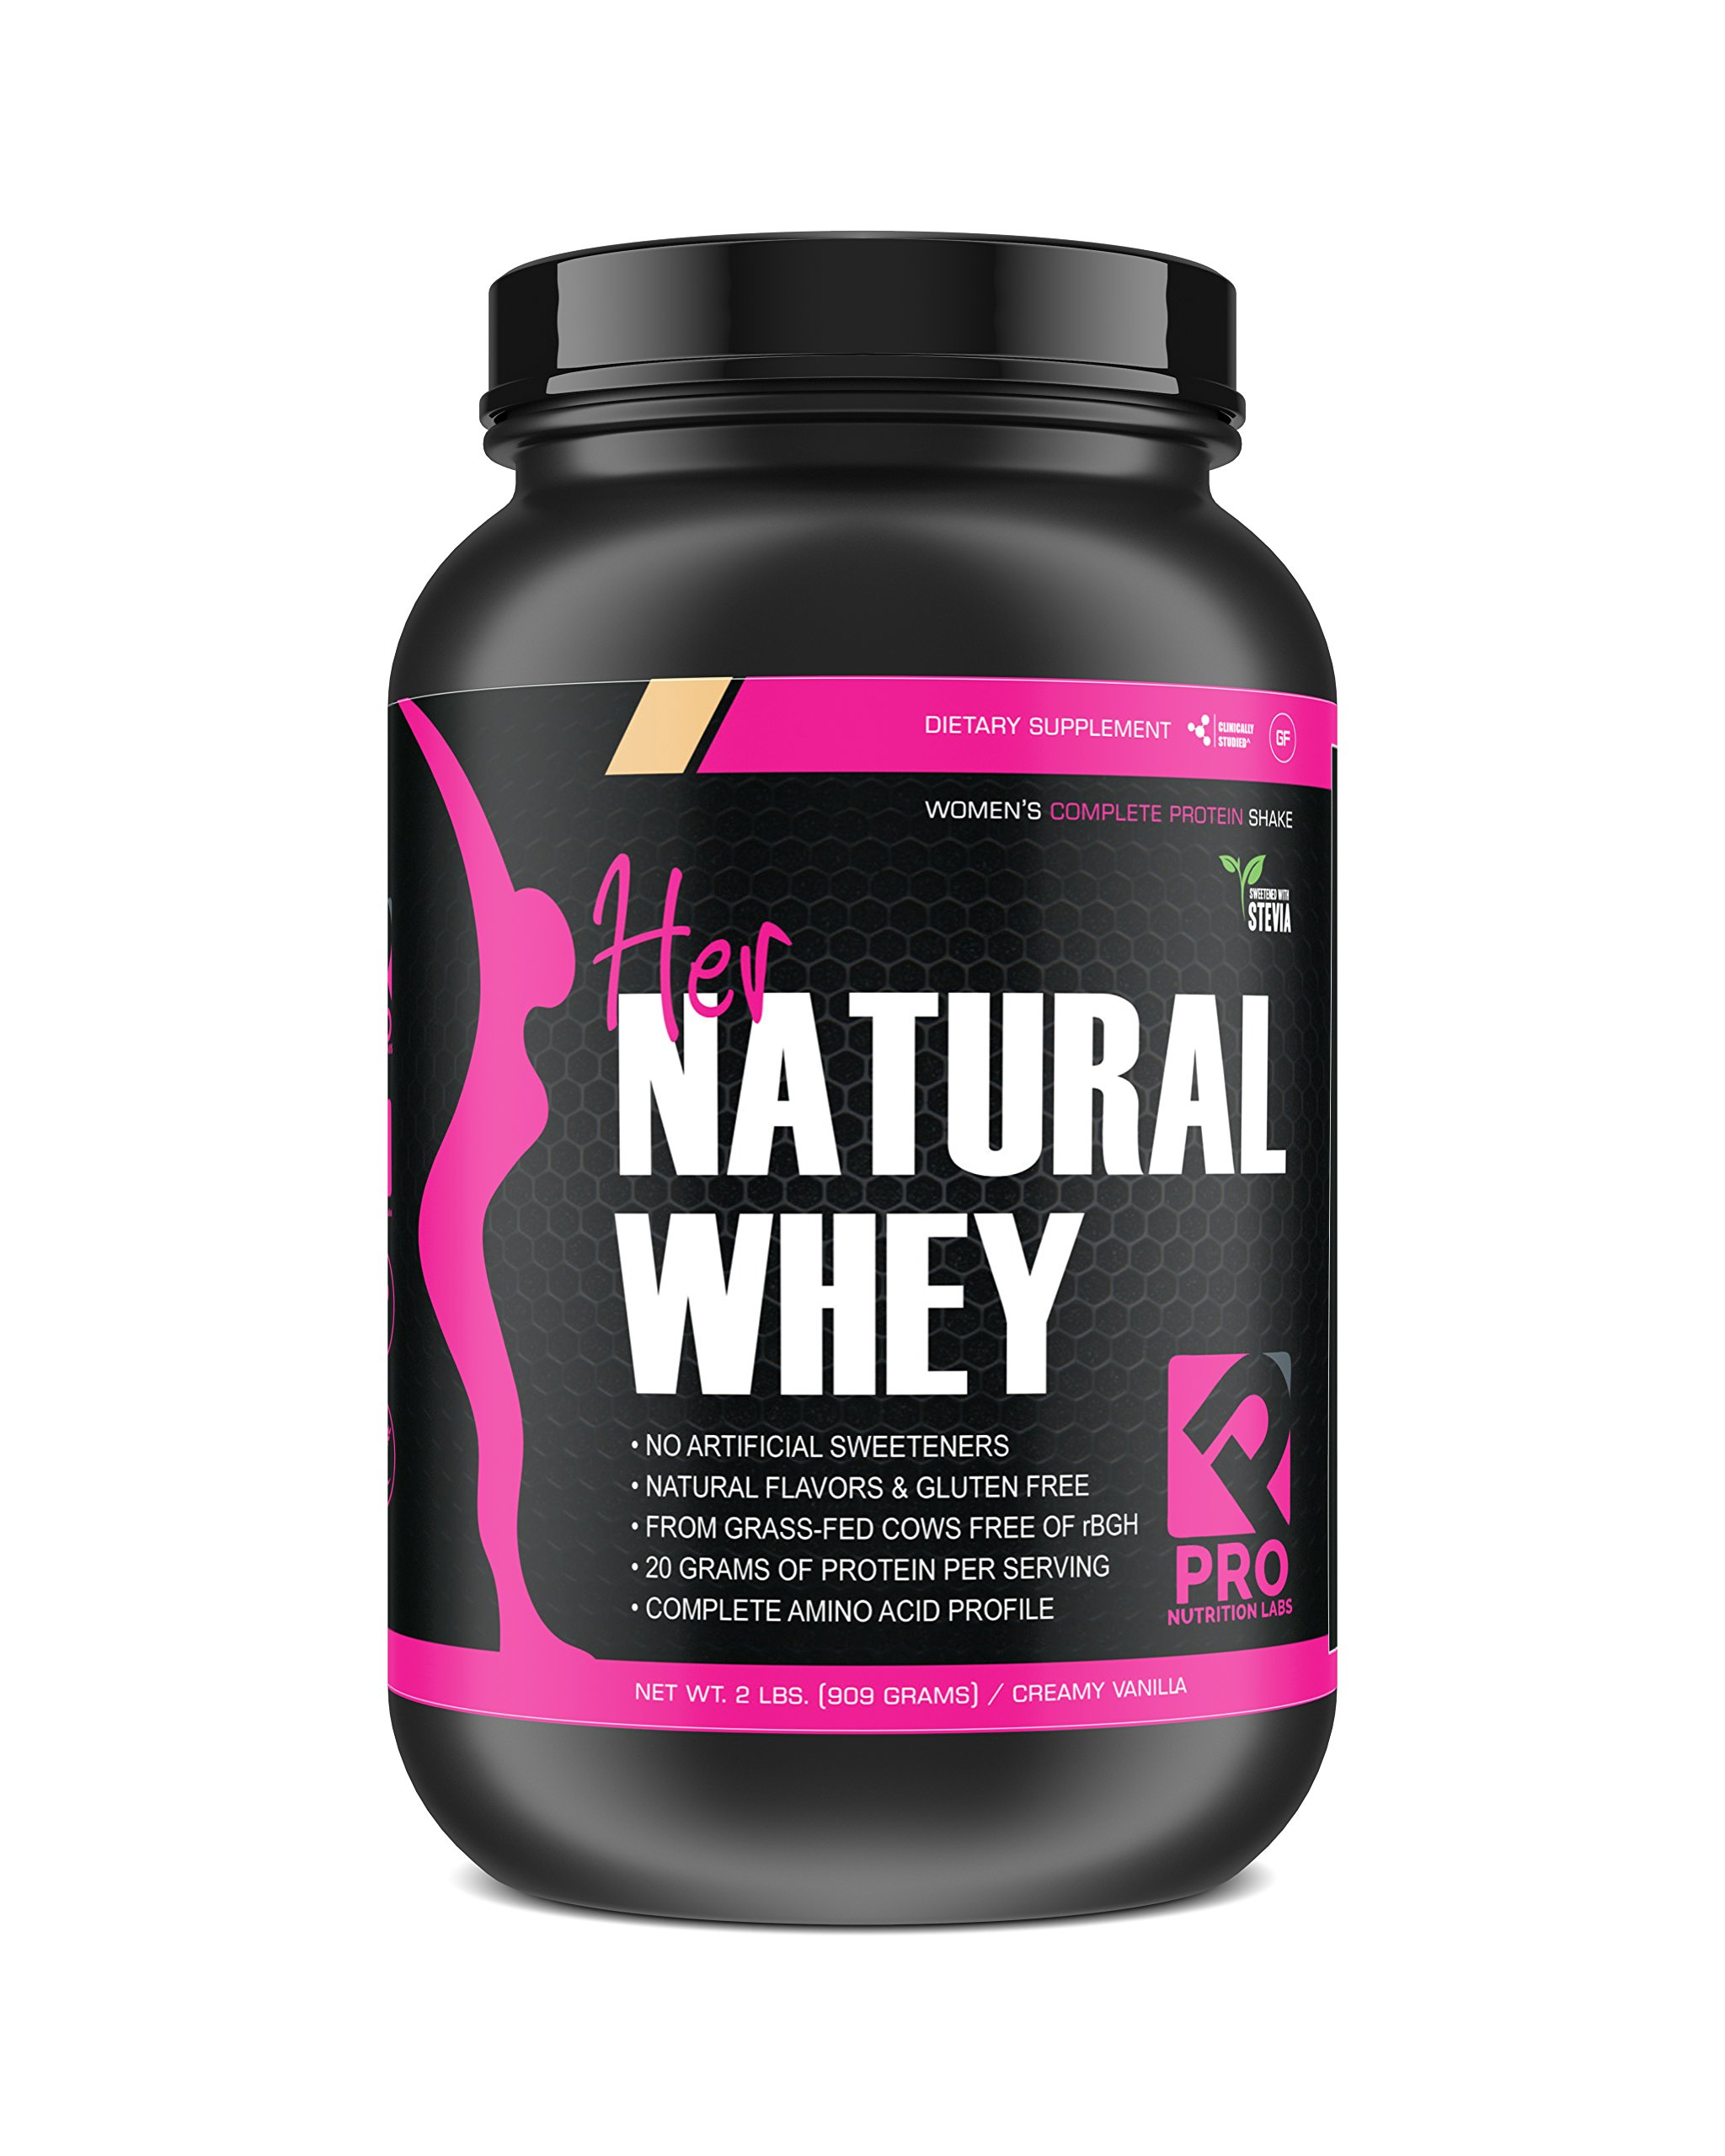 Amazon.com: Protein Powder for Women - Her Natural Whey Protein Powder for Weight Loss & to